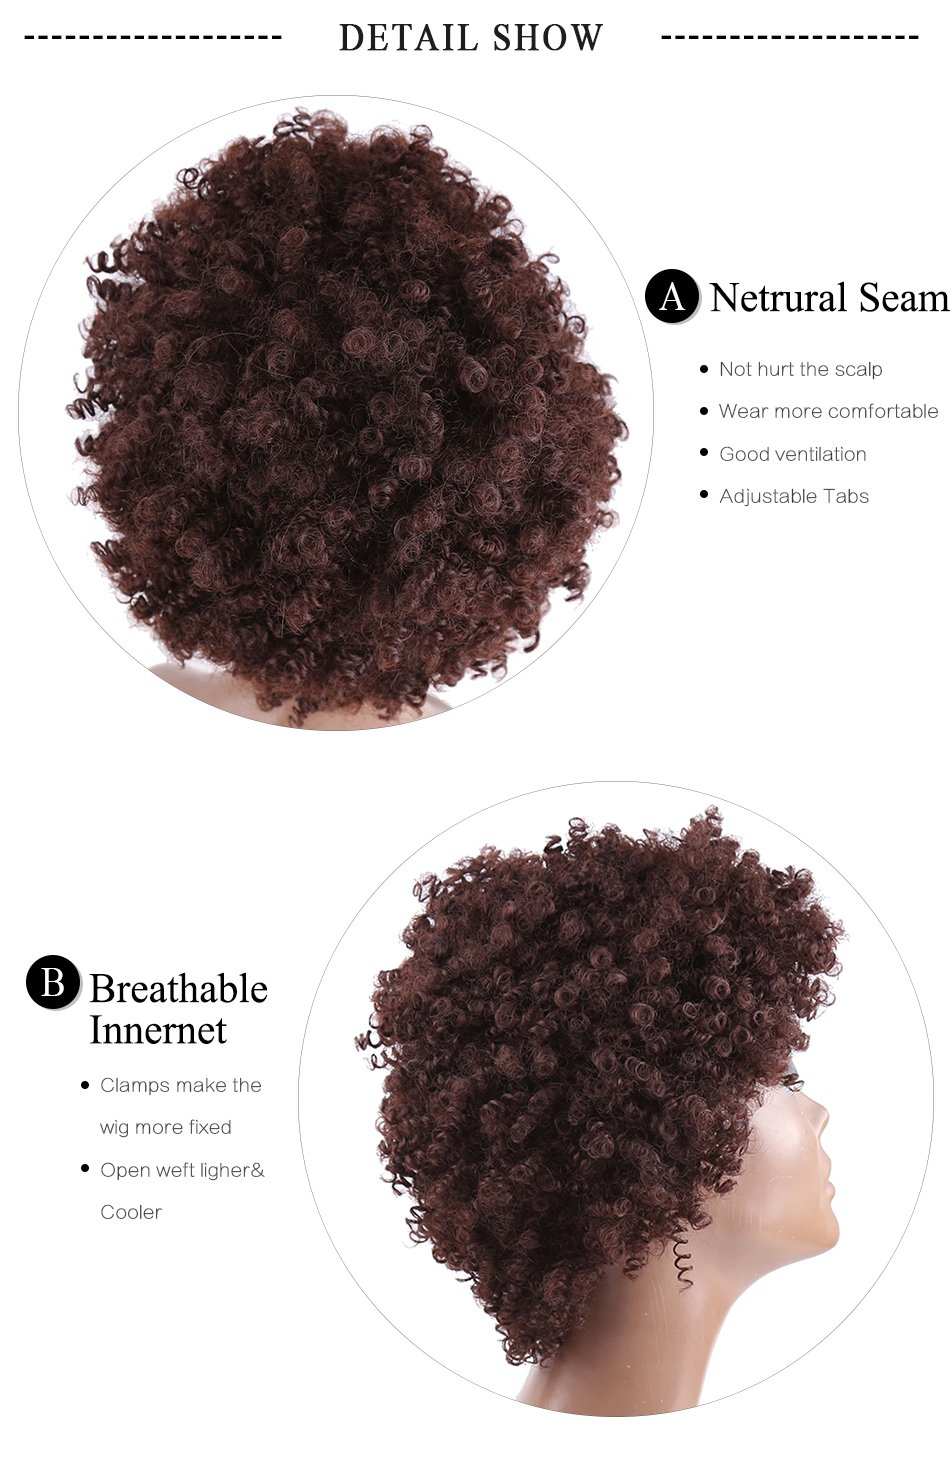 Amazon.com: Kinky Curly Afro Wig Synthetic Hair Short Wigs for Women and Men African Pelucas Sinteticas Cosplay (Brown): Beauty